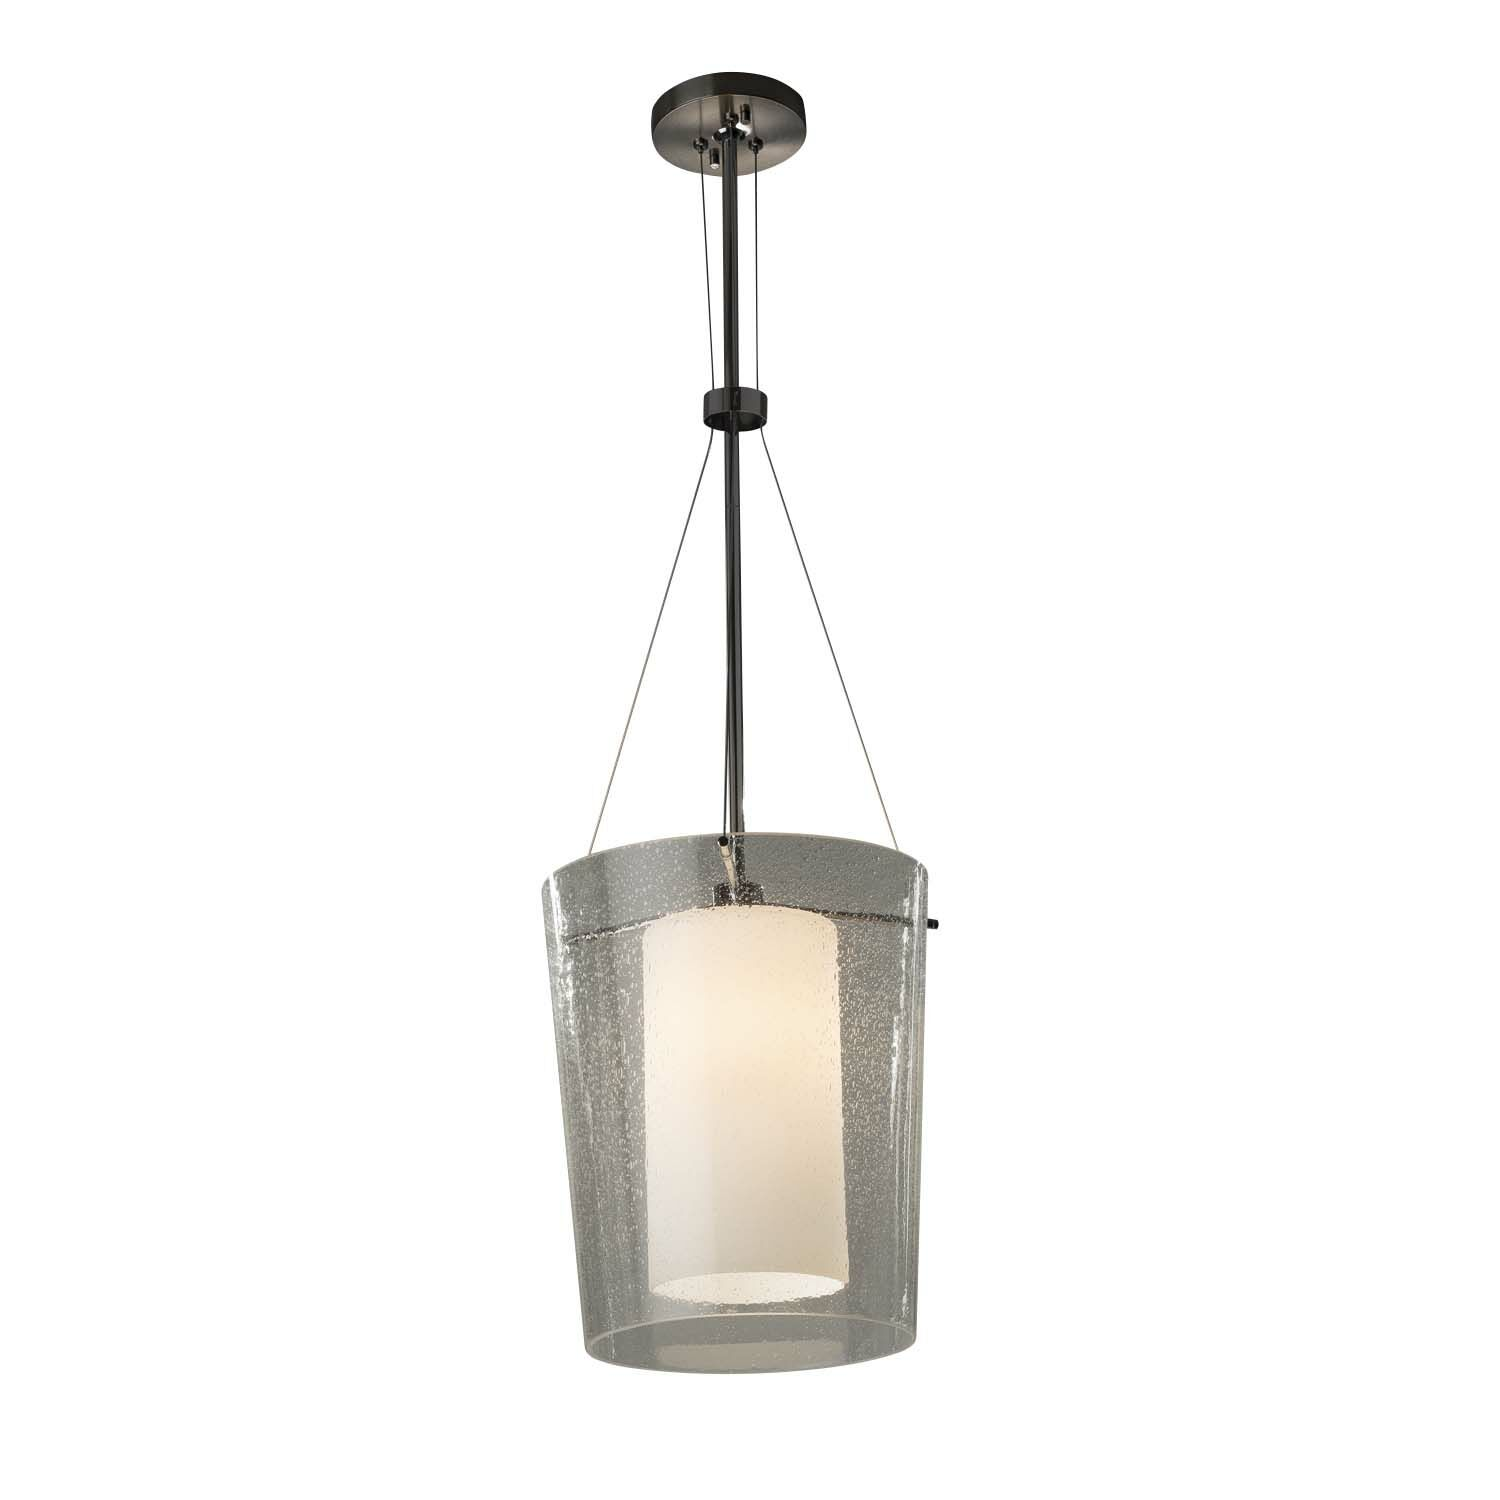 Luzerne 1-Light Drum Pendant Finish: Brushed Nickel, Shade Color: Ribbon, Bulb Type: Incandescent